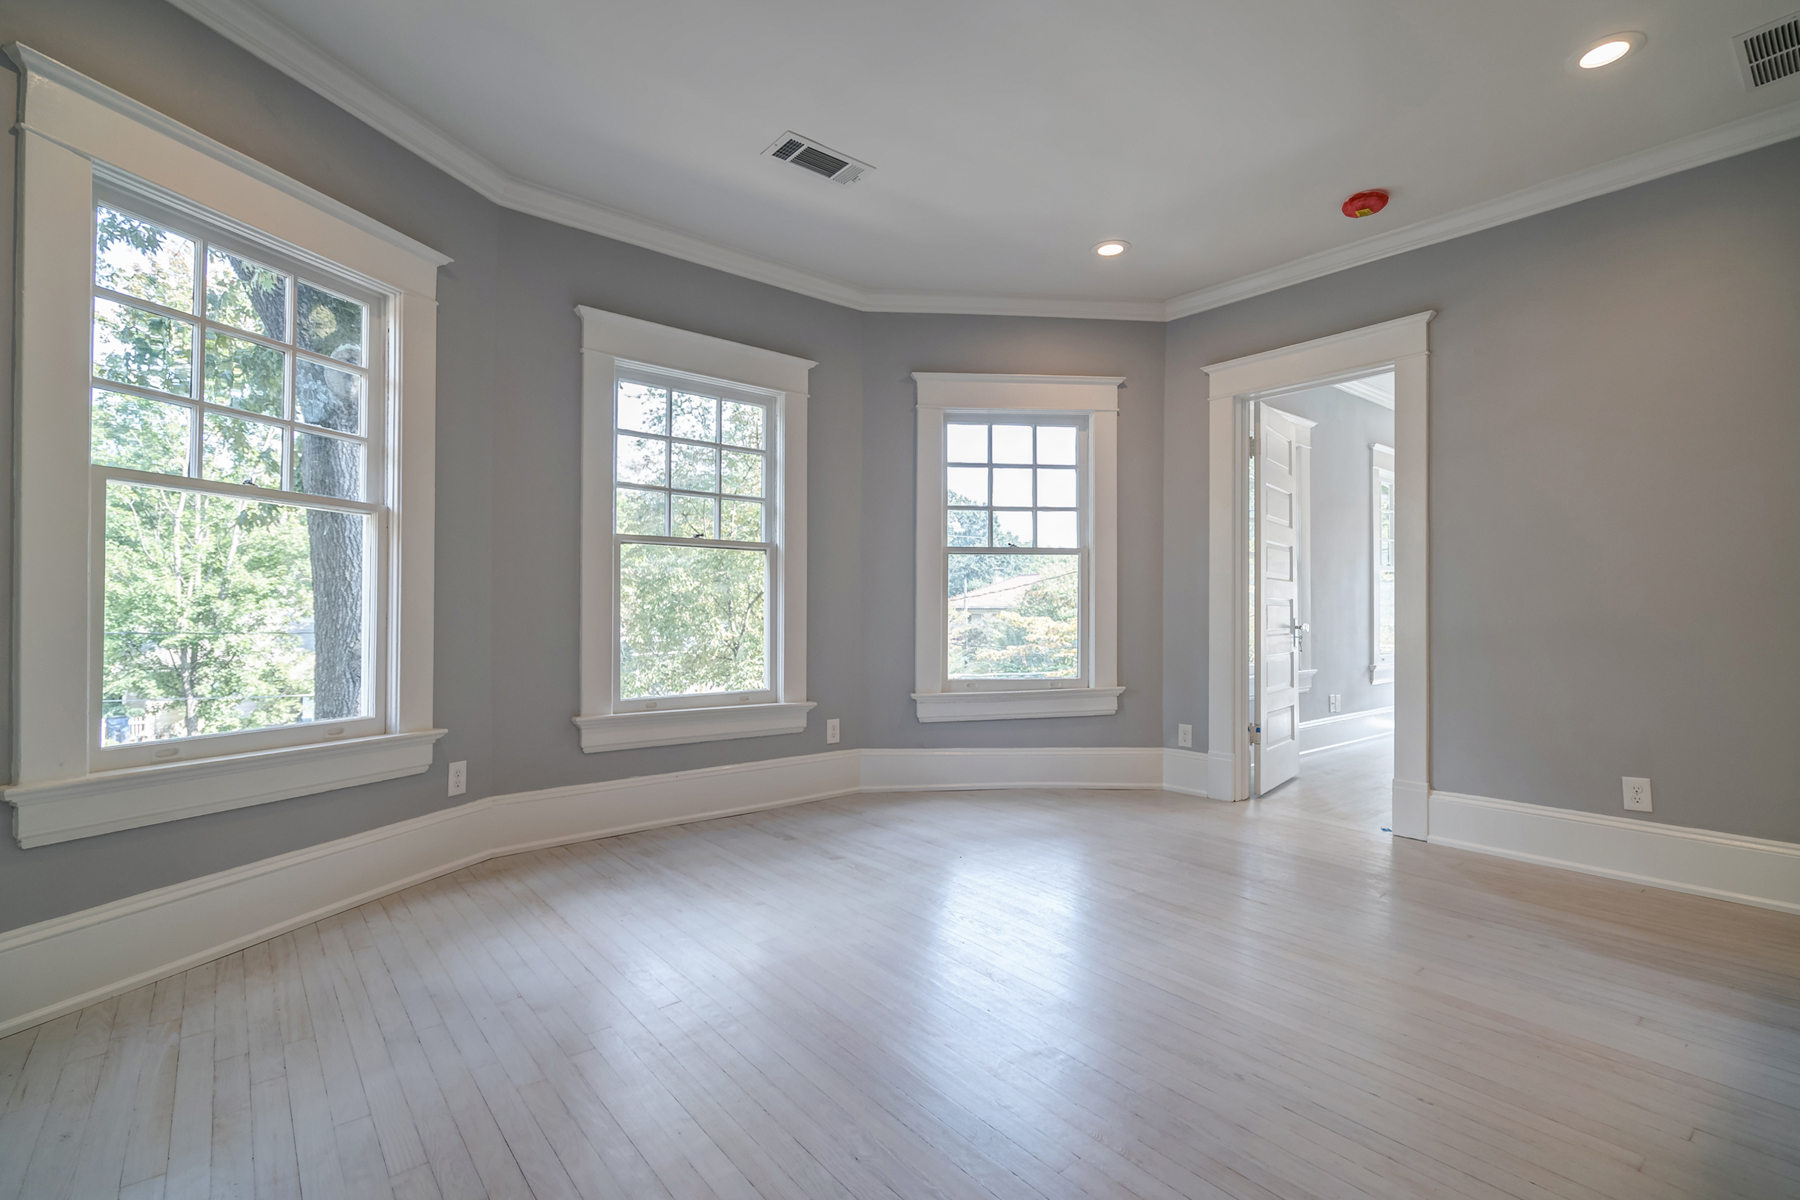 Additional photo for property listing at Amazing Location And Better Than New 744 Penn Avenue NE Atlanta, Georgia 30308 United States